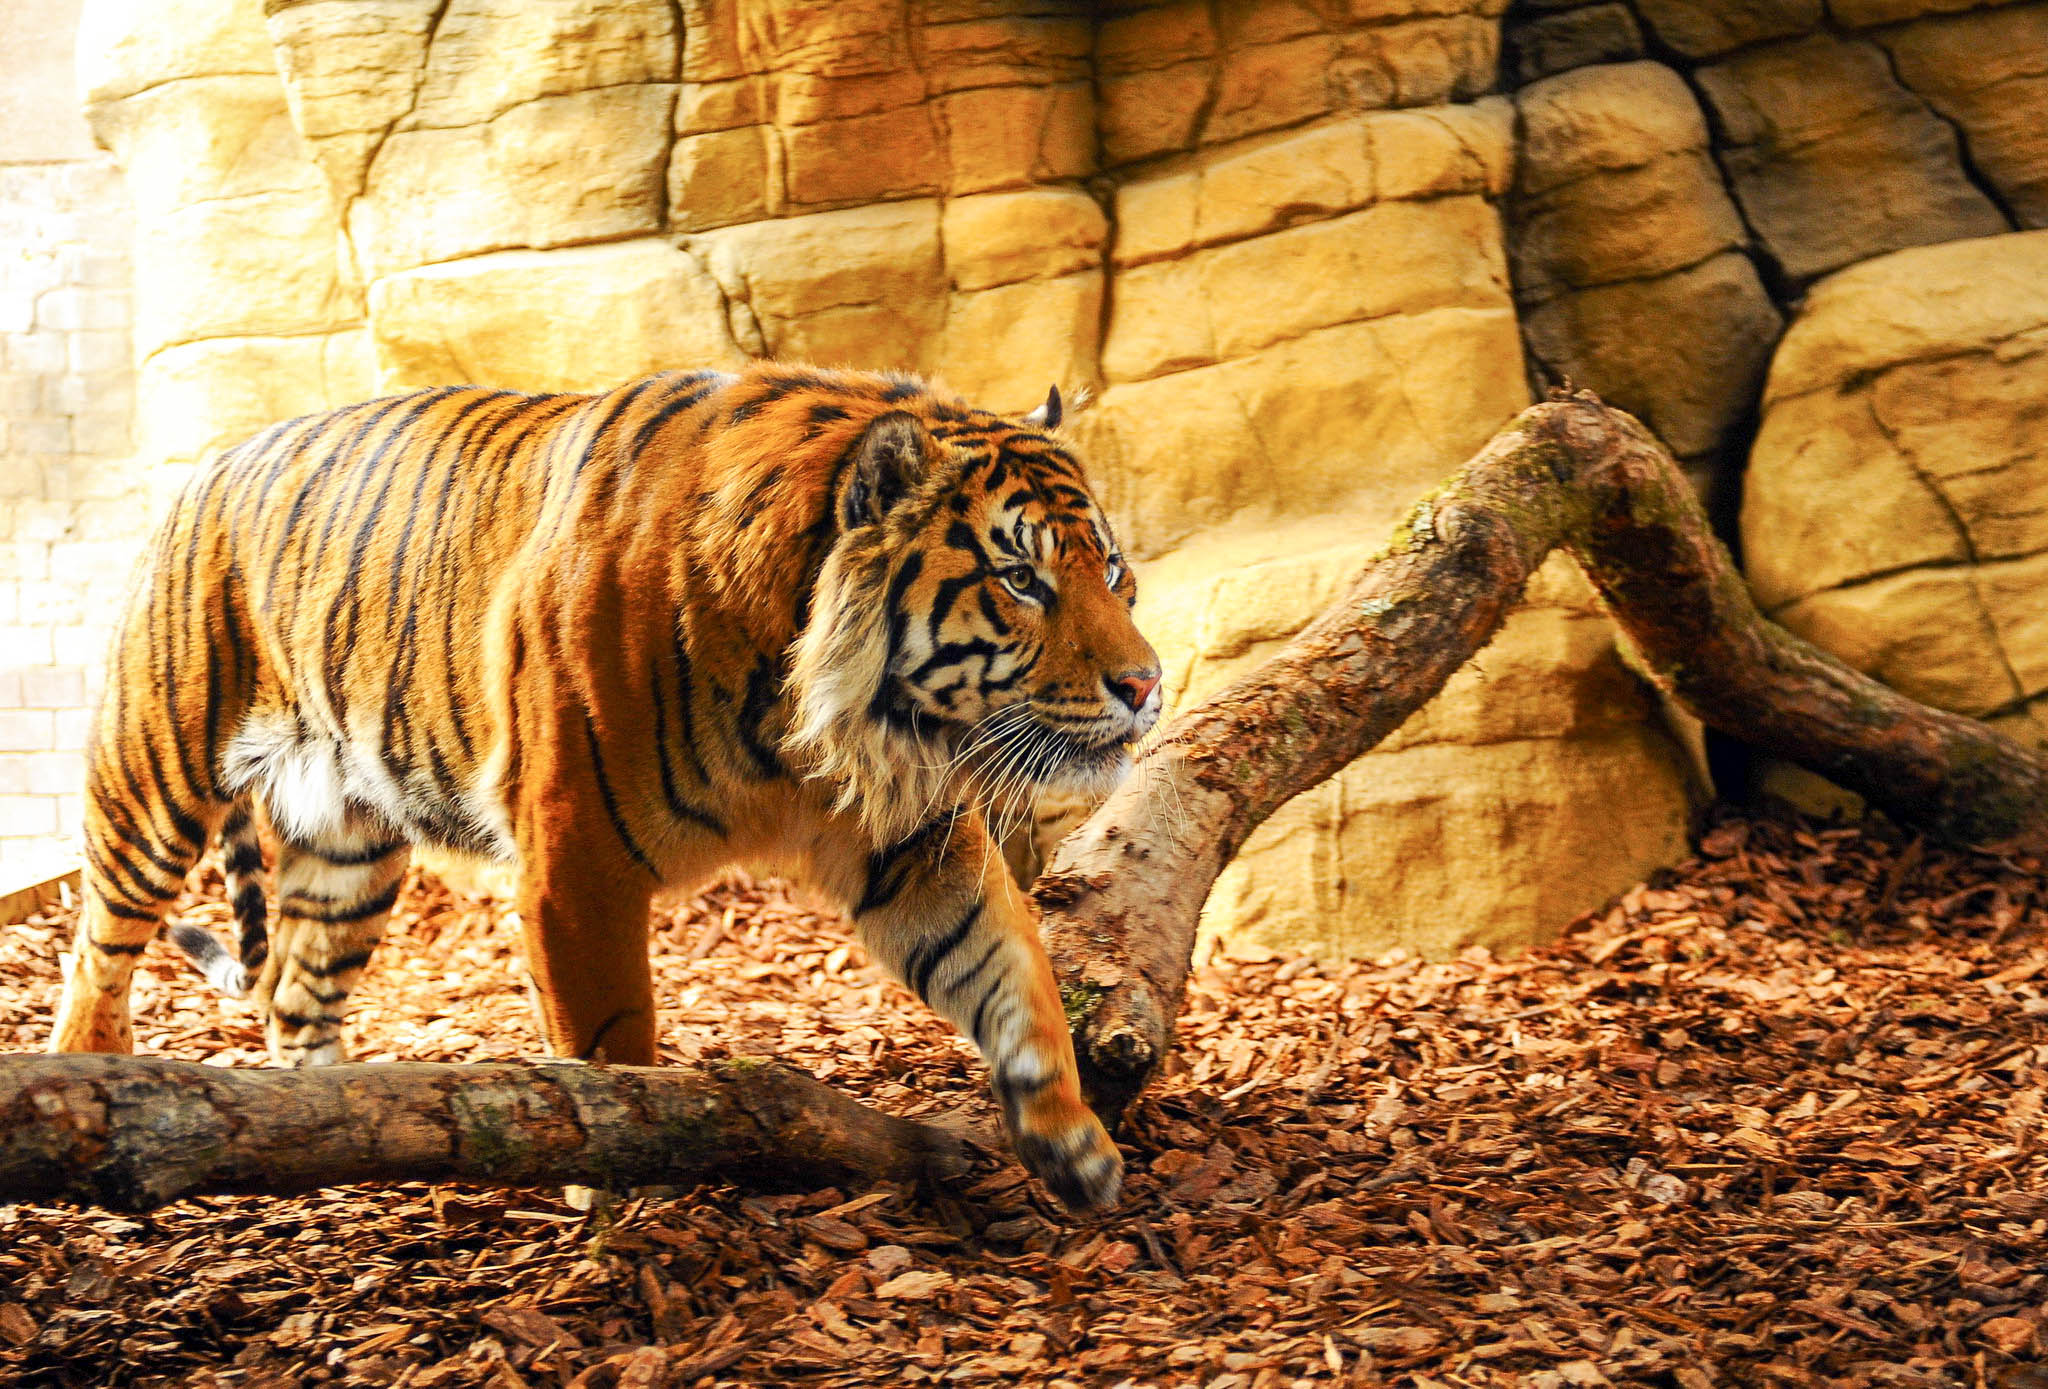 Tiger High Definiton HD Desktop Backgrounds & Wallpapers